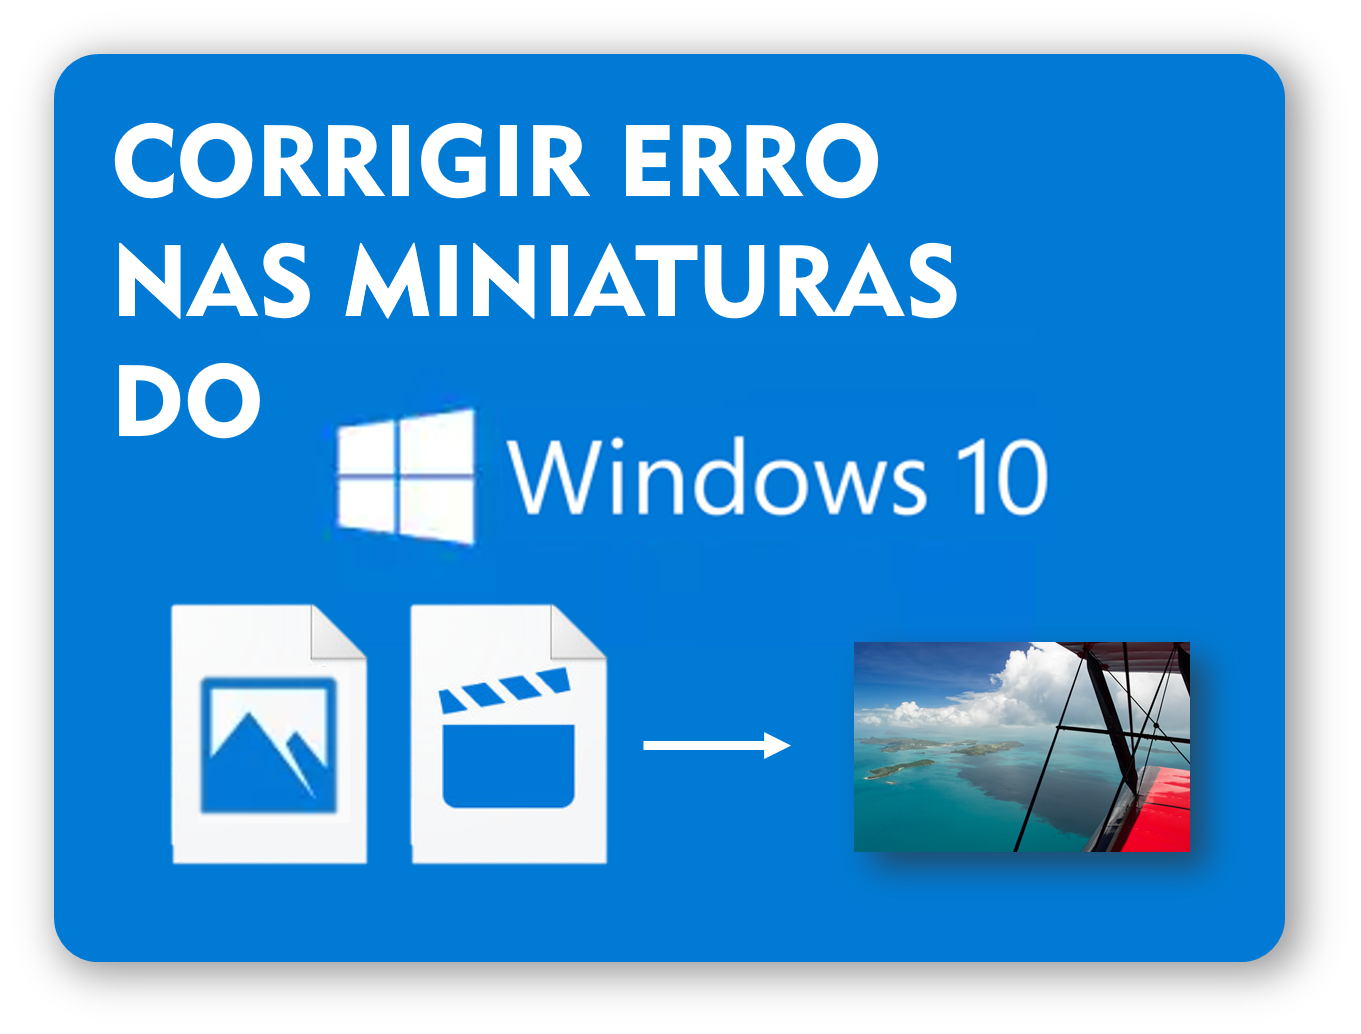 Como mostrar miniaturas de fotos e vídeos no Windows